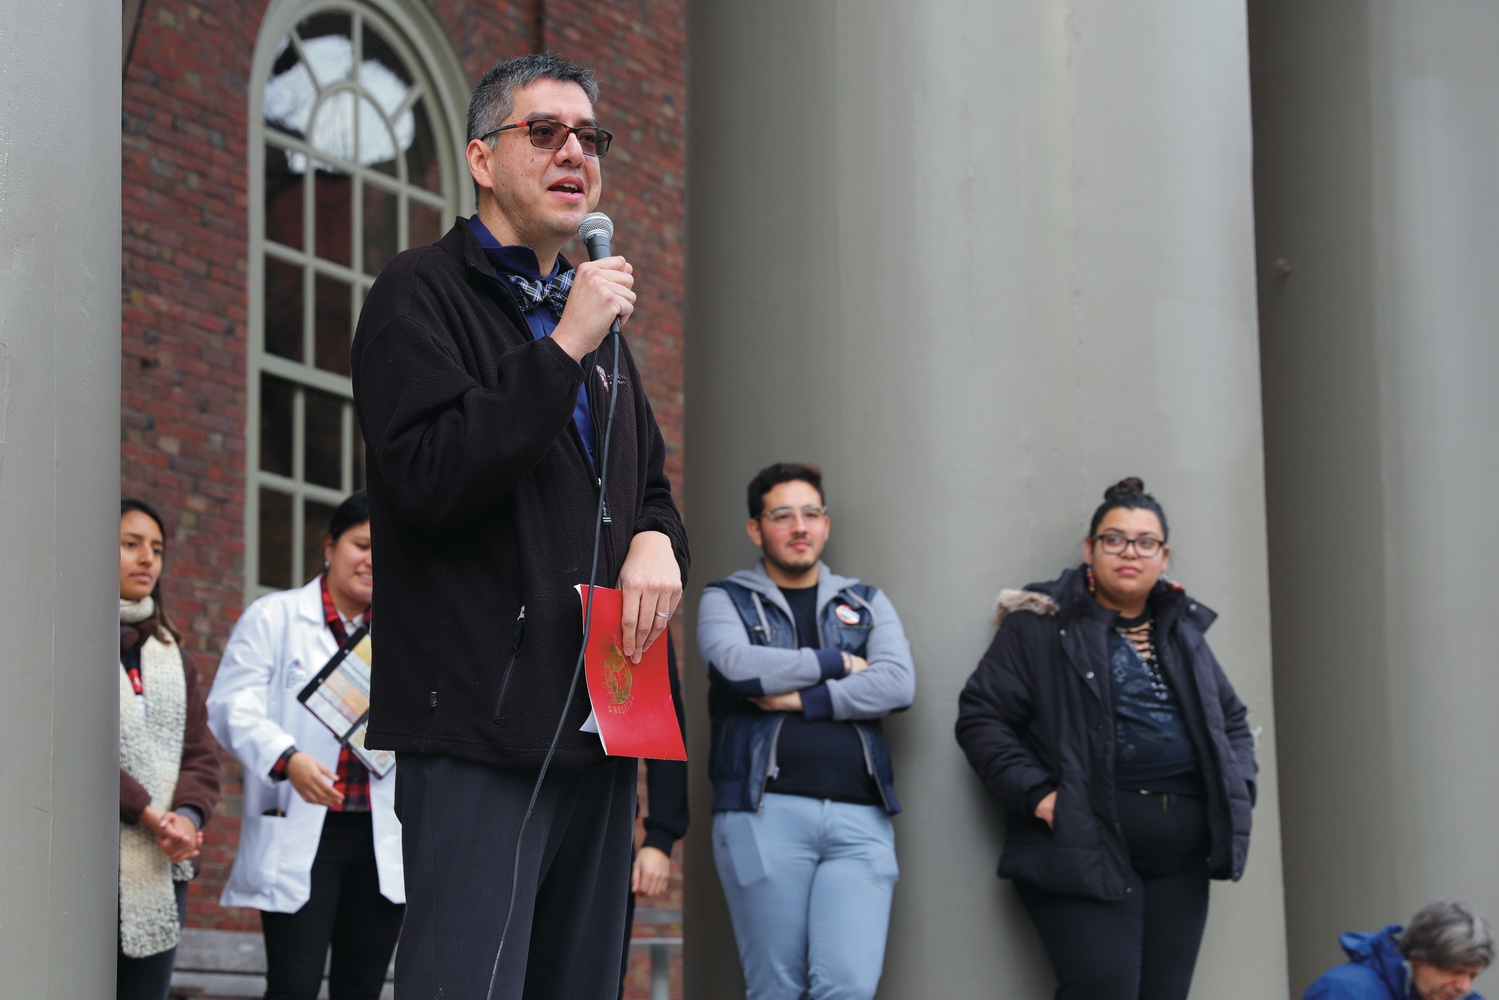 Harvard Medical School Dean for Students Fidencio Saldaña spoke about the ways Harvard Medical School supports undocumented students during a walkout in support of DACA recipients Monday afternoon at Memorial Church.